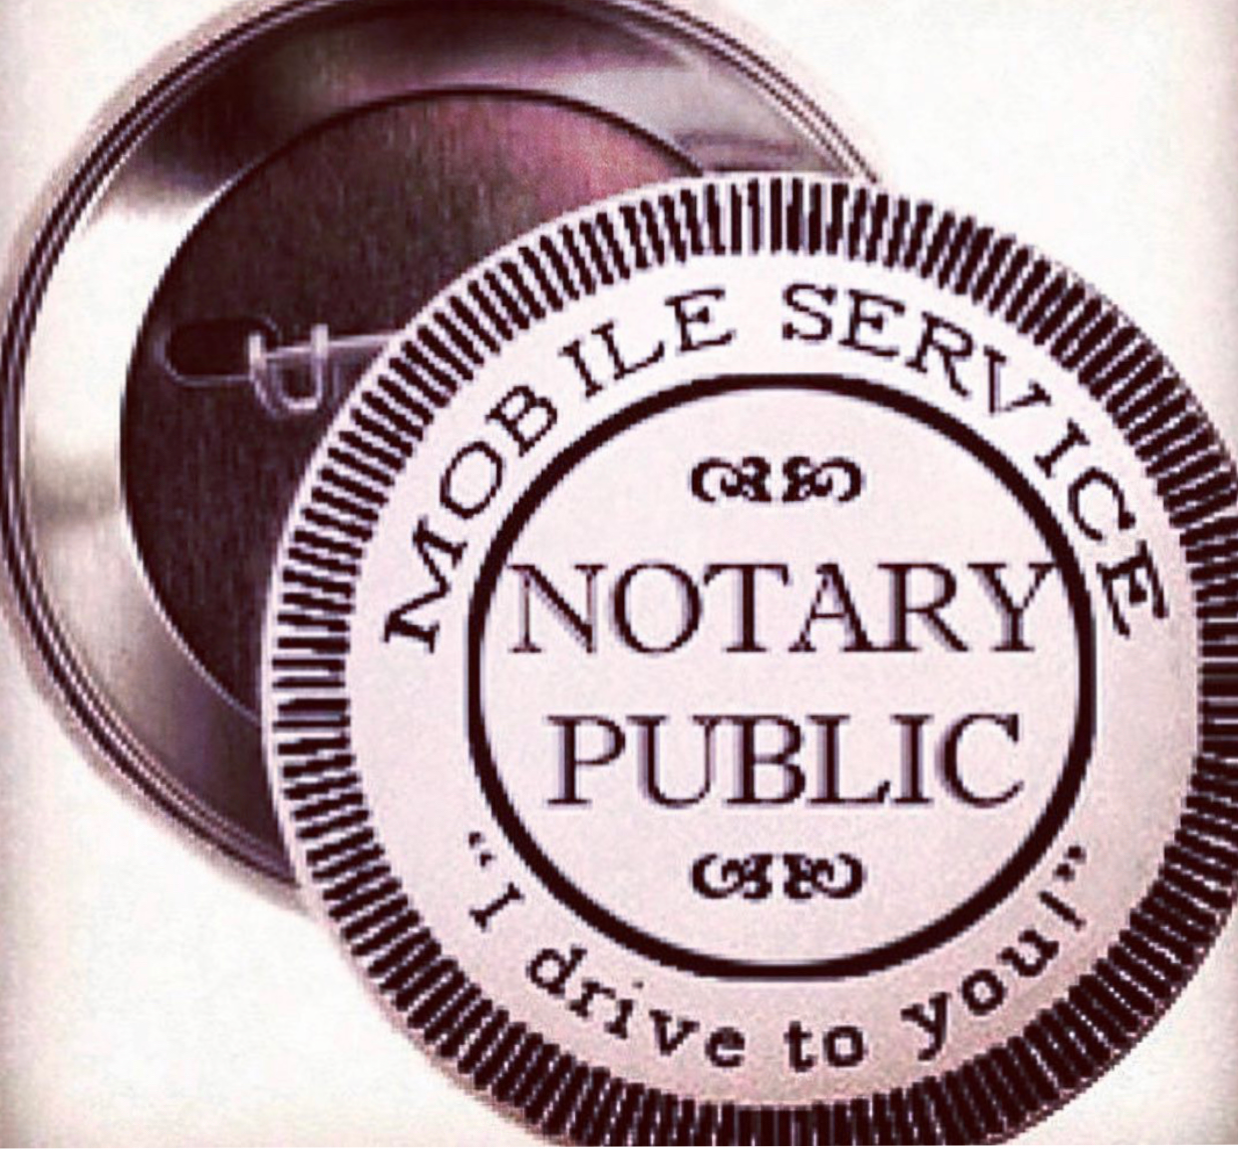 General Notary Work